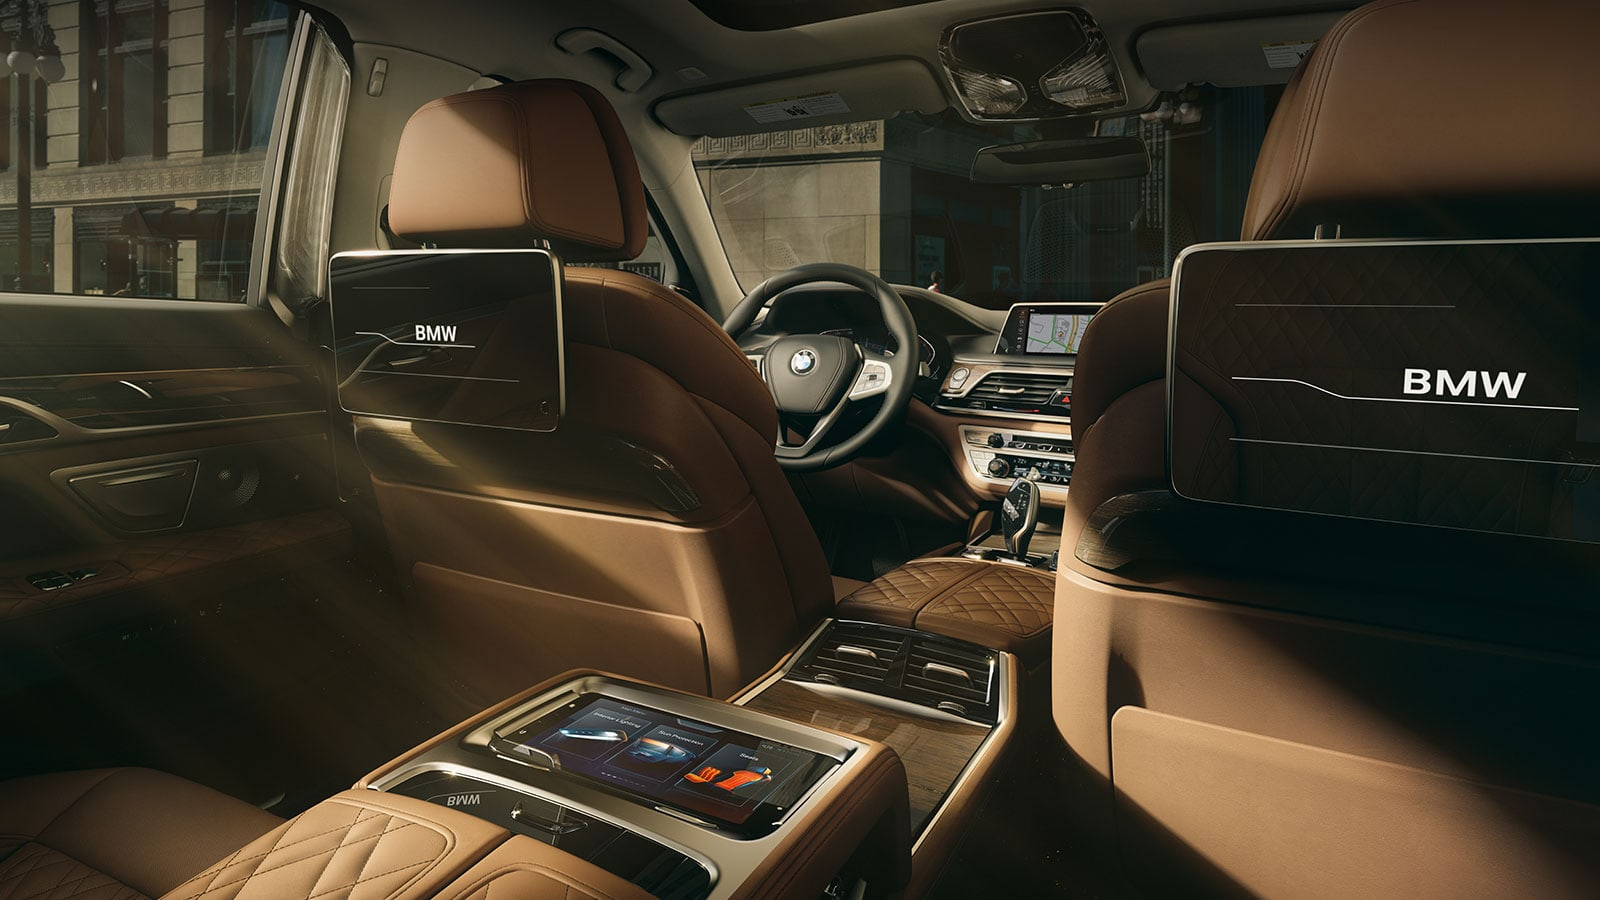 A sunlit interior of the BMW 7 Series showcasing the available Rear-Seat Entertainment System.